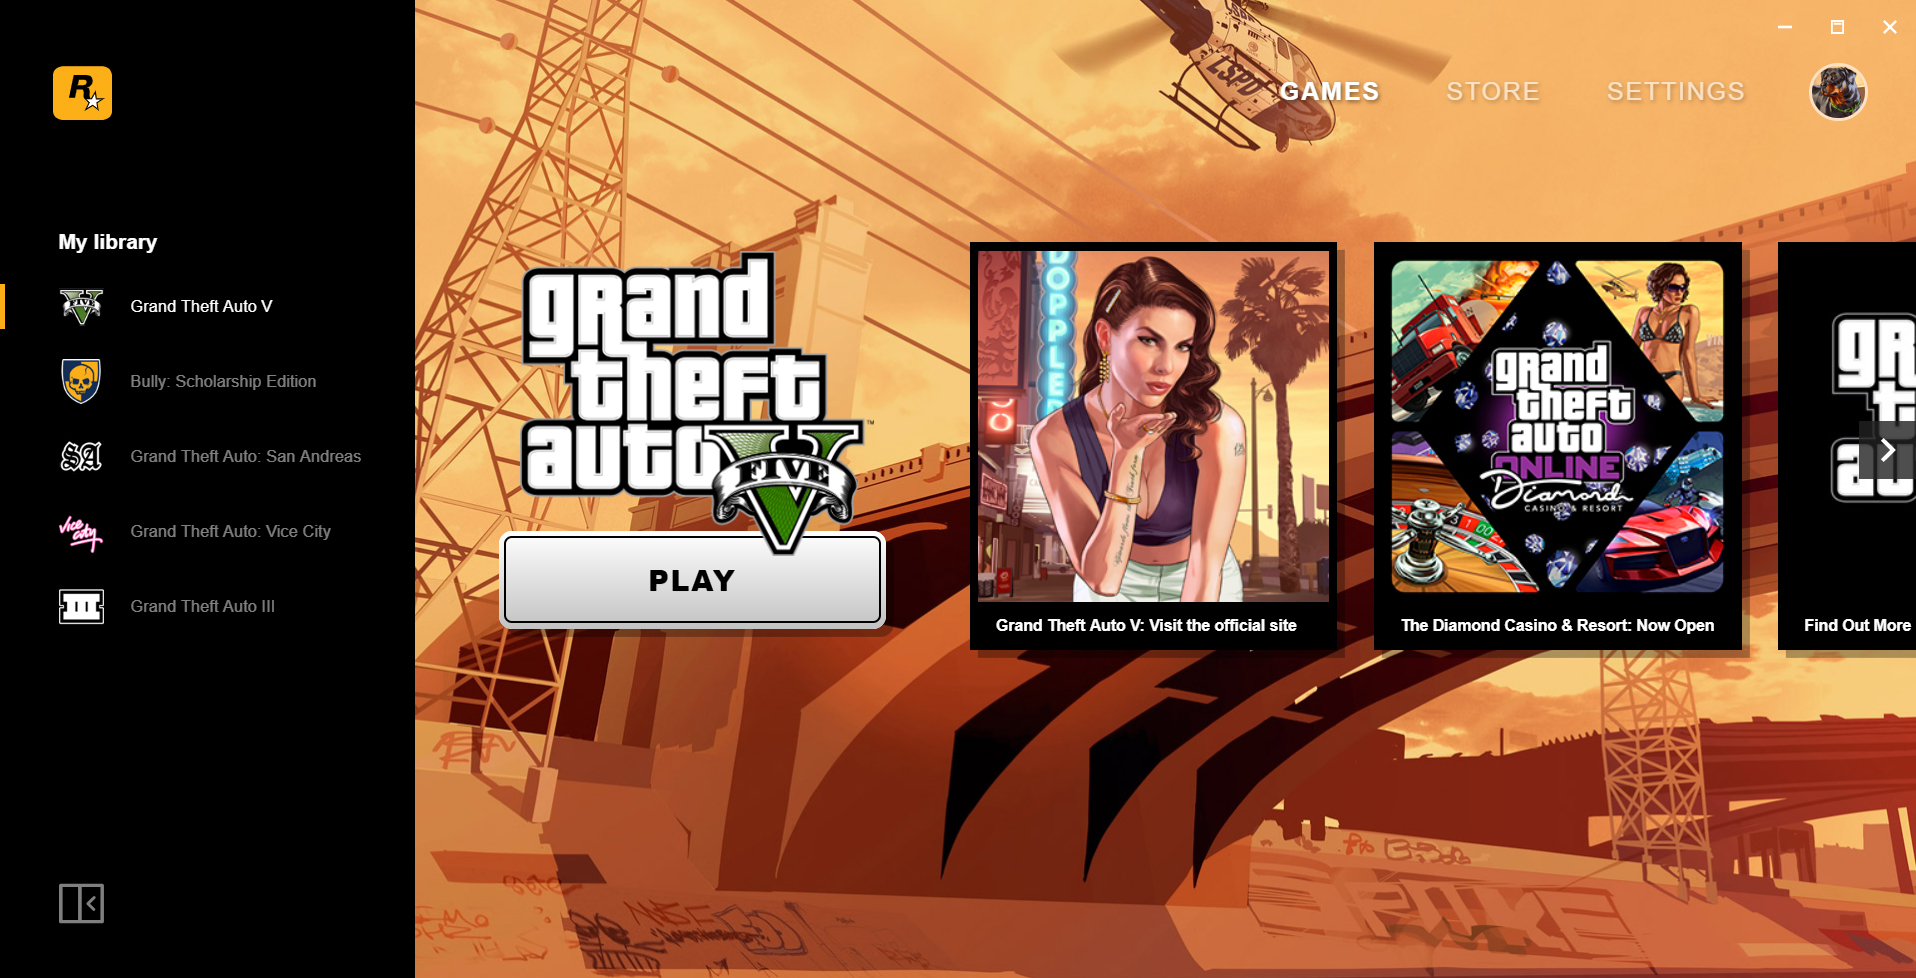 Rockstar also has its own PC game starter, download and send classic games.